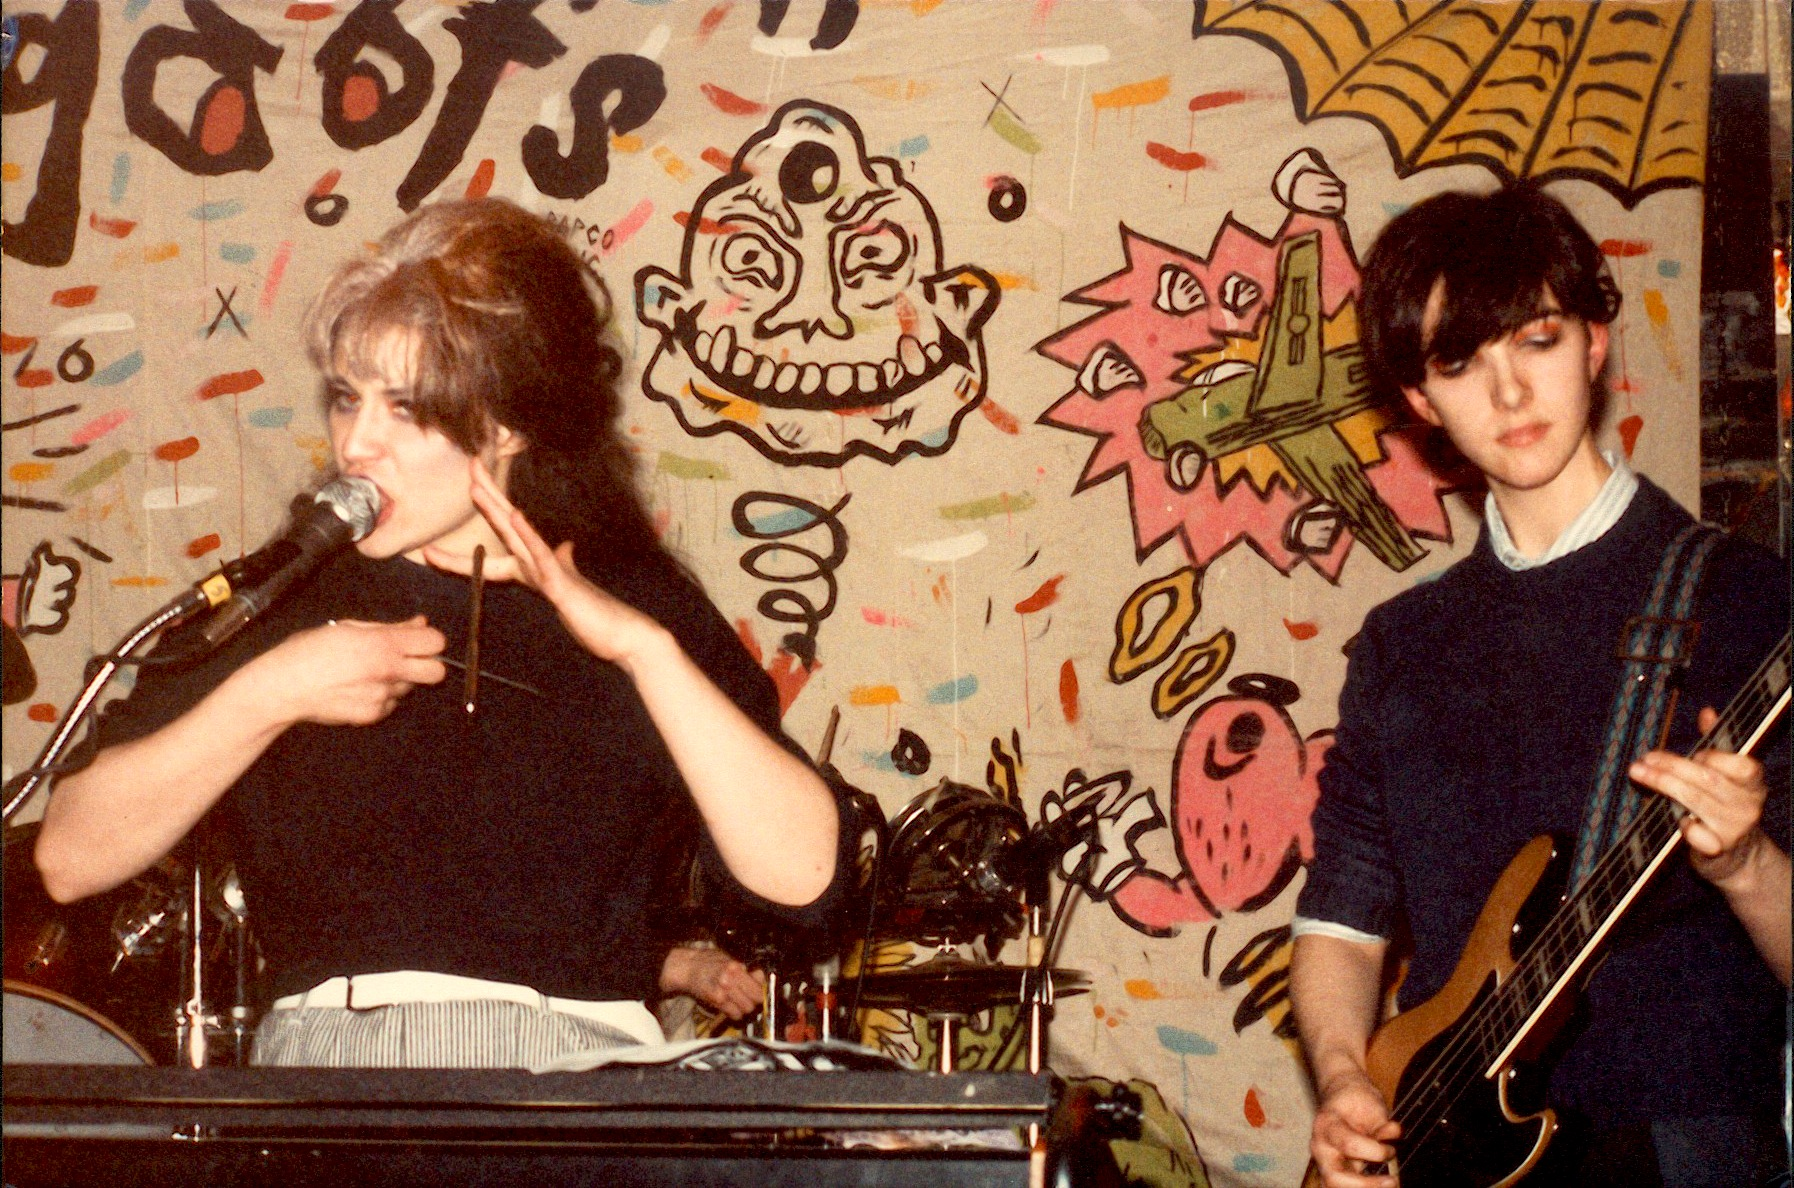 Two women on stage playing music in front of a painted backdrop. The left woman sings into a microphone and is sitting in front of a keyboard. The woman on the right plays a guitar.